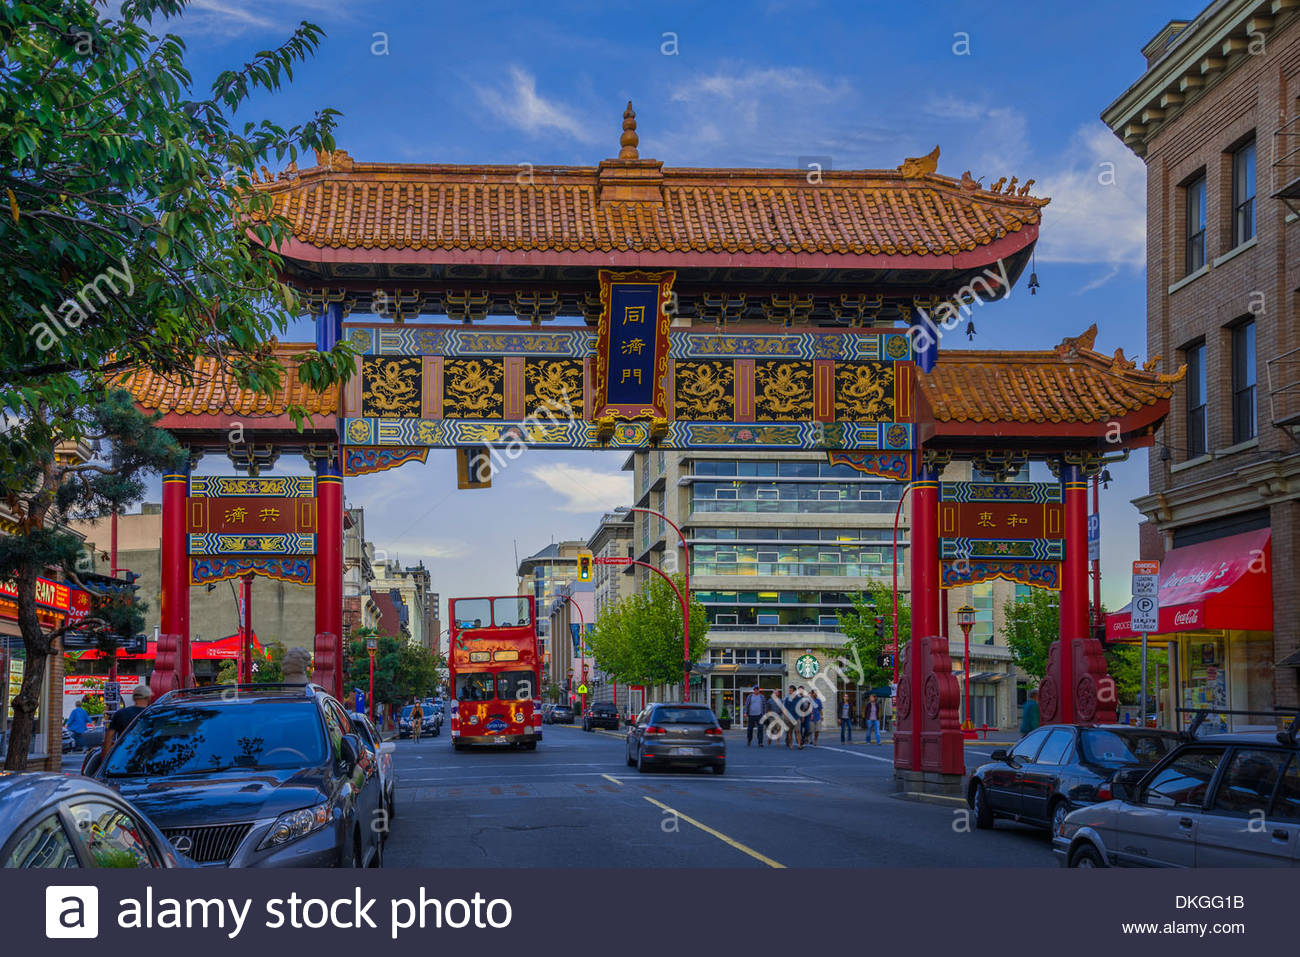 'The Gates of Harmonious Interest', Chinatown, Victoria, British Columbia, Canada - Stock Image